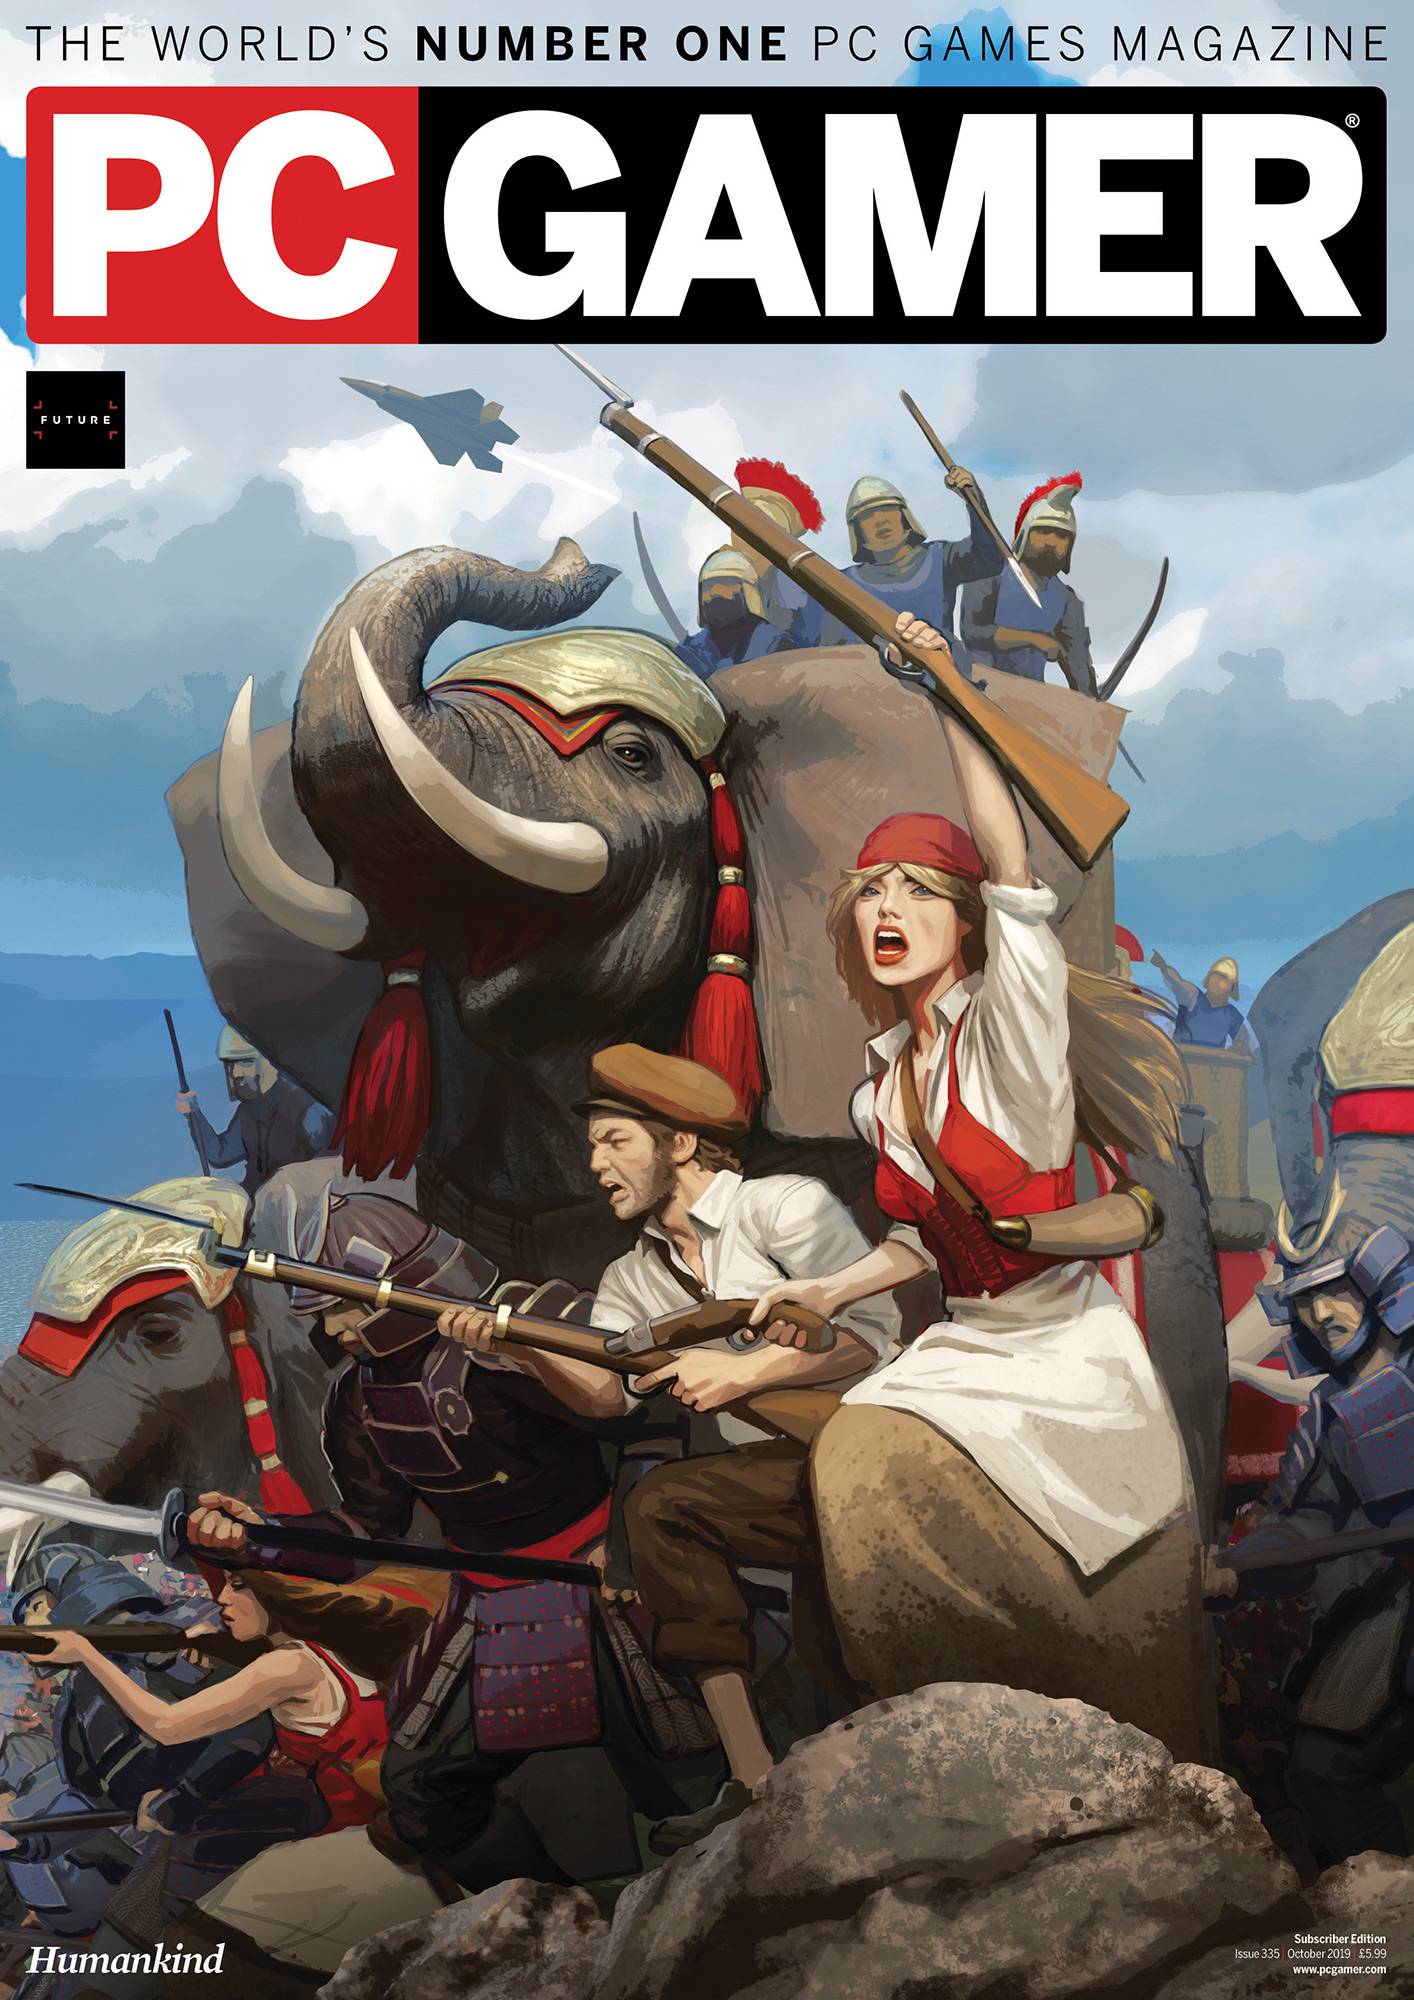 PC Gamer UK October issue: Humankind | PC Gamer